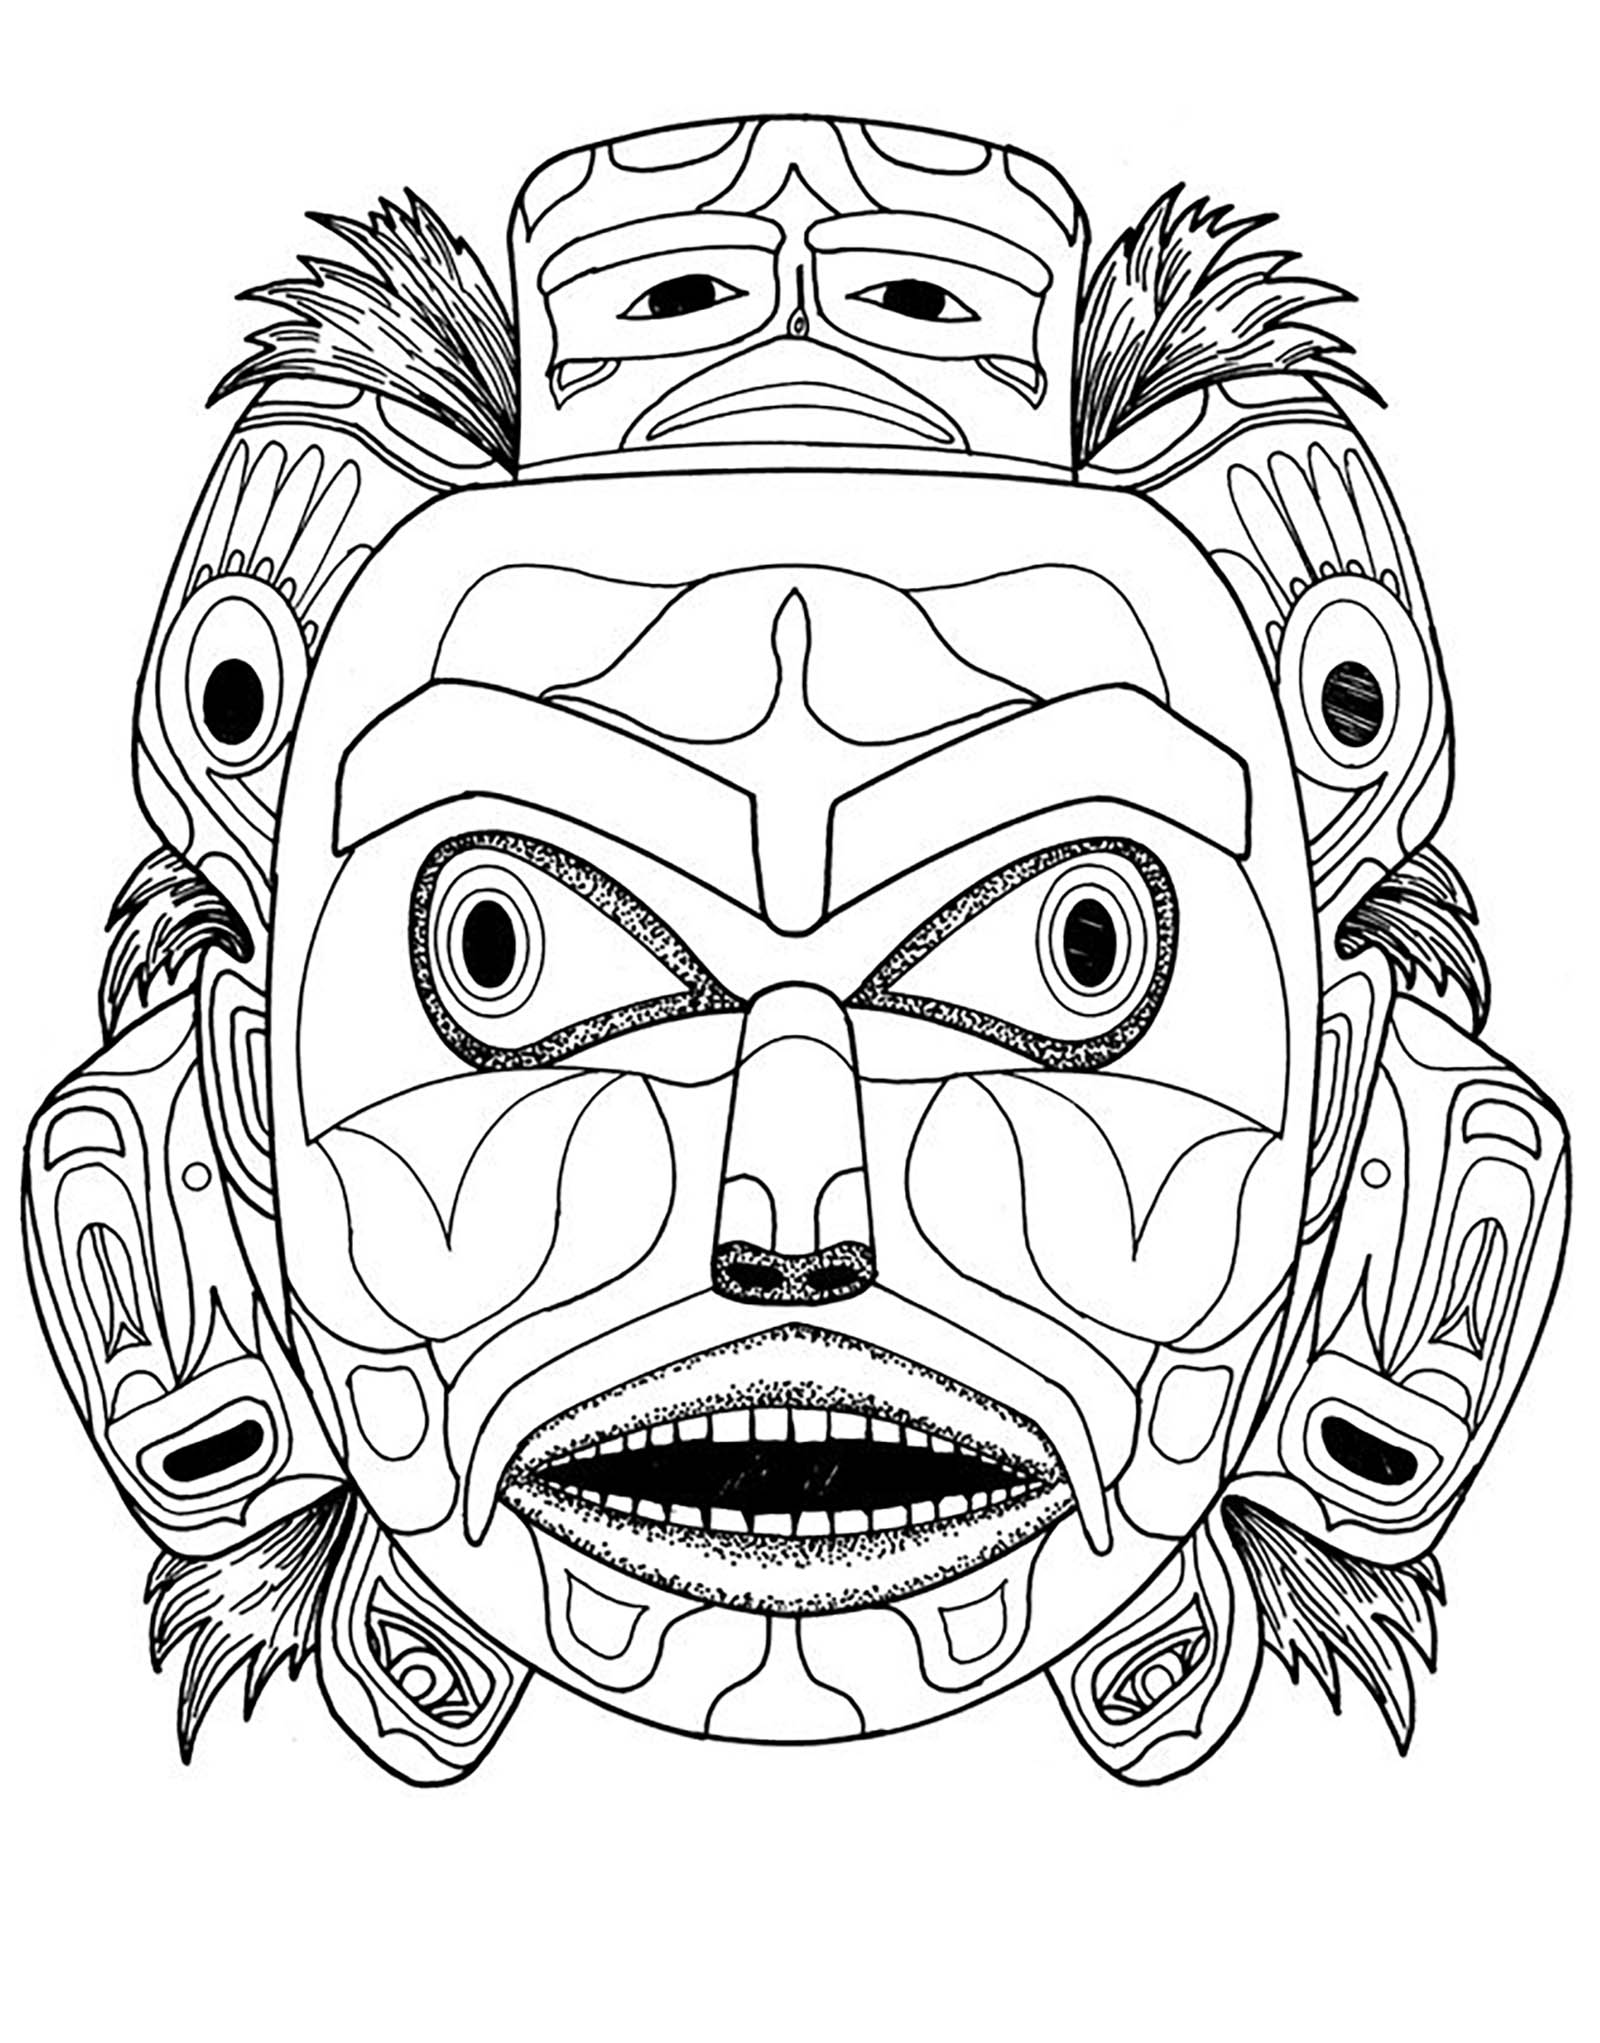 native art coloring pages pacific northwest native american art coloring pages s pages coloring native art